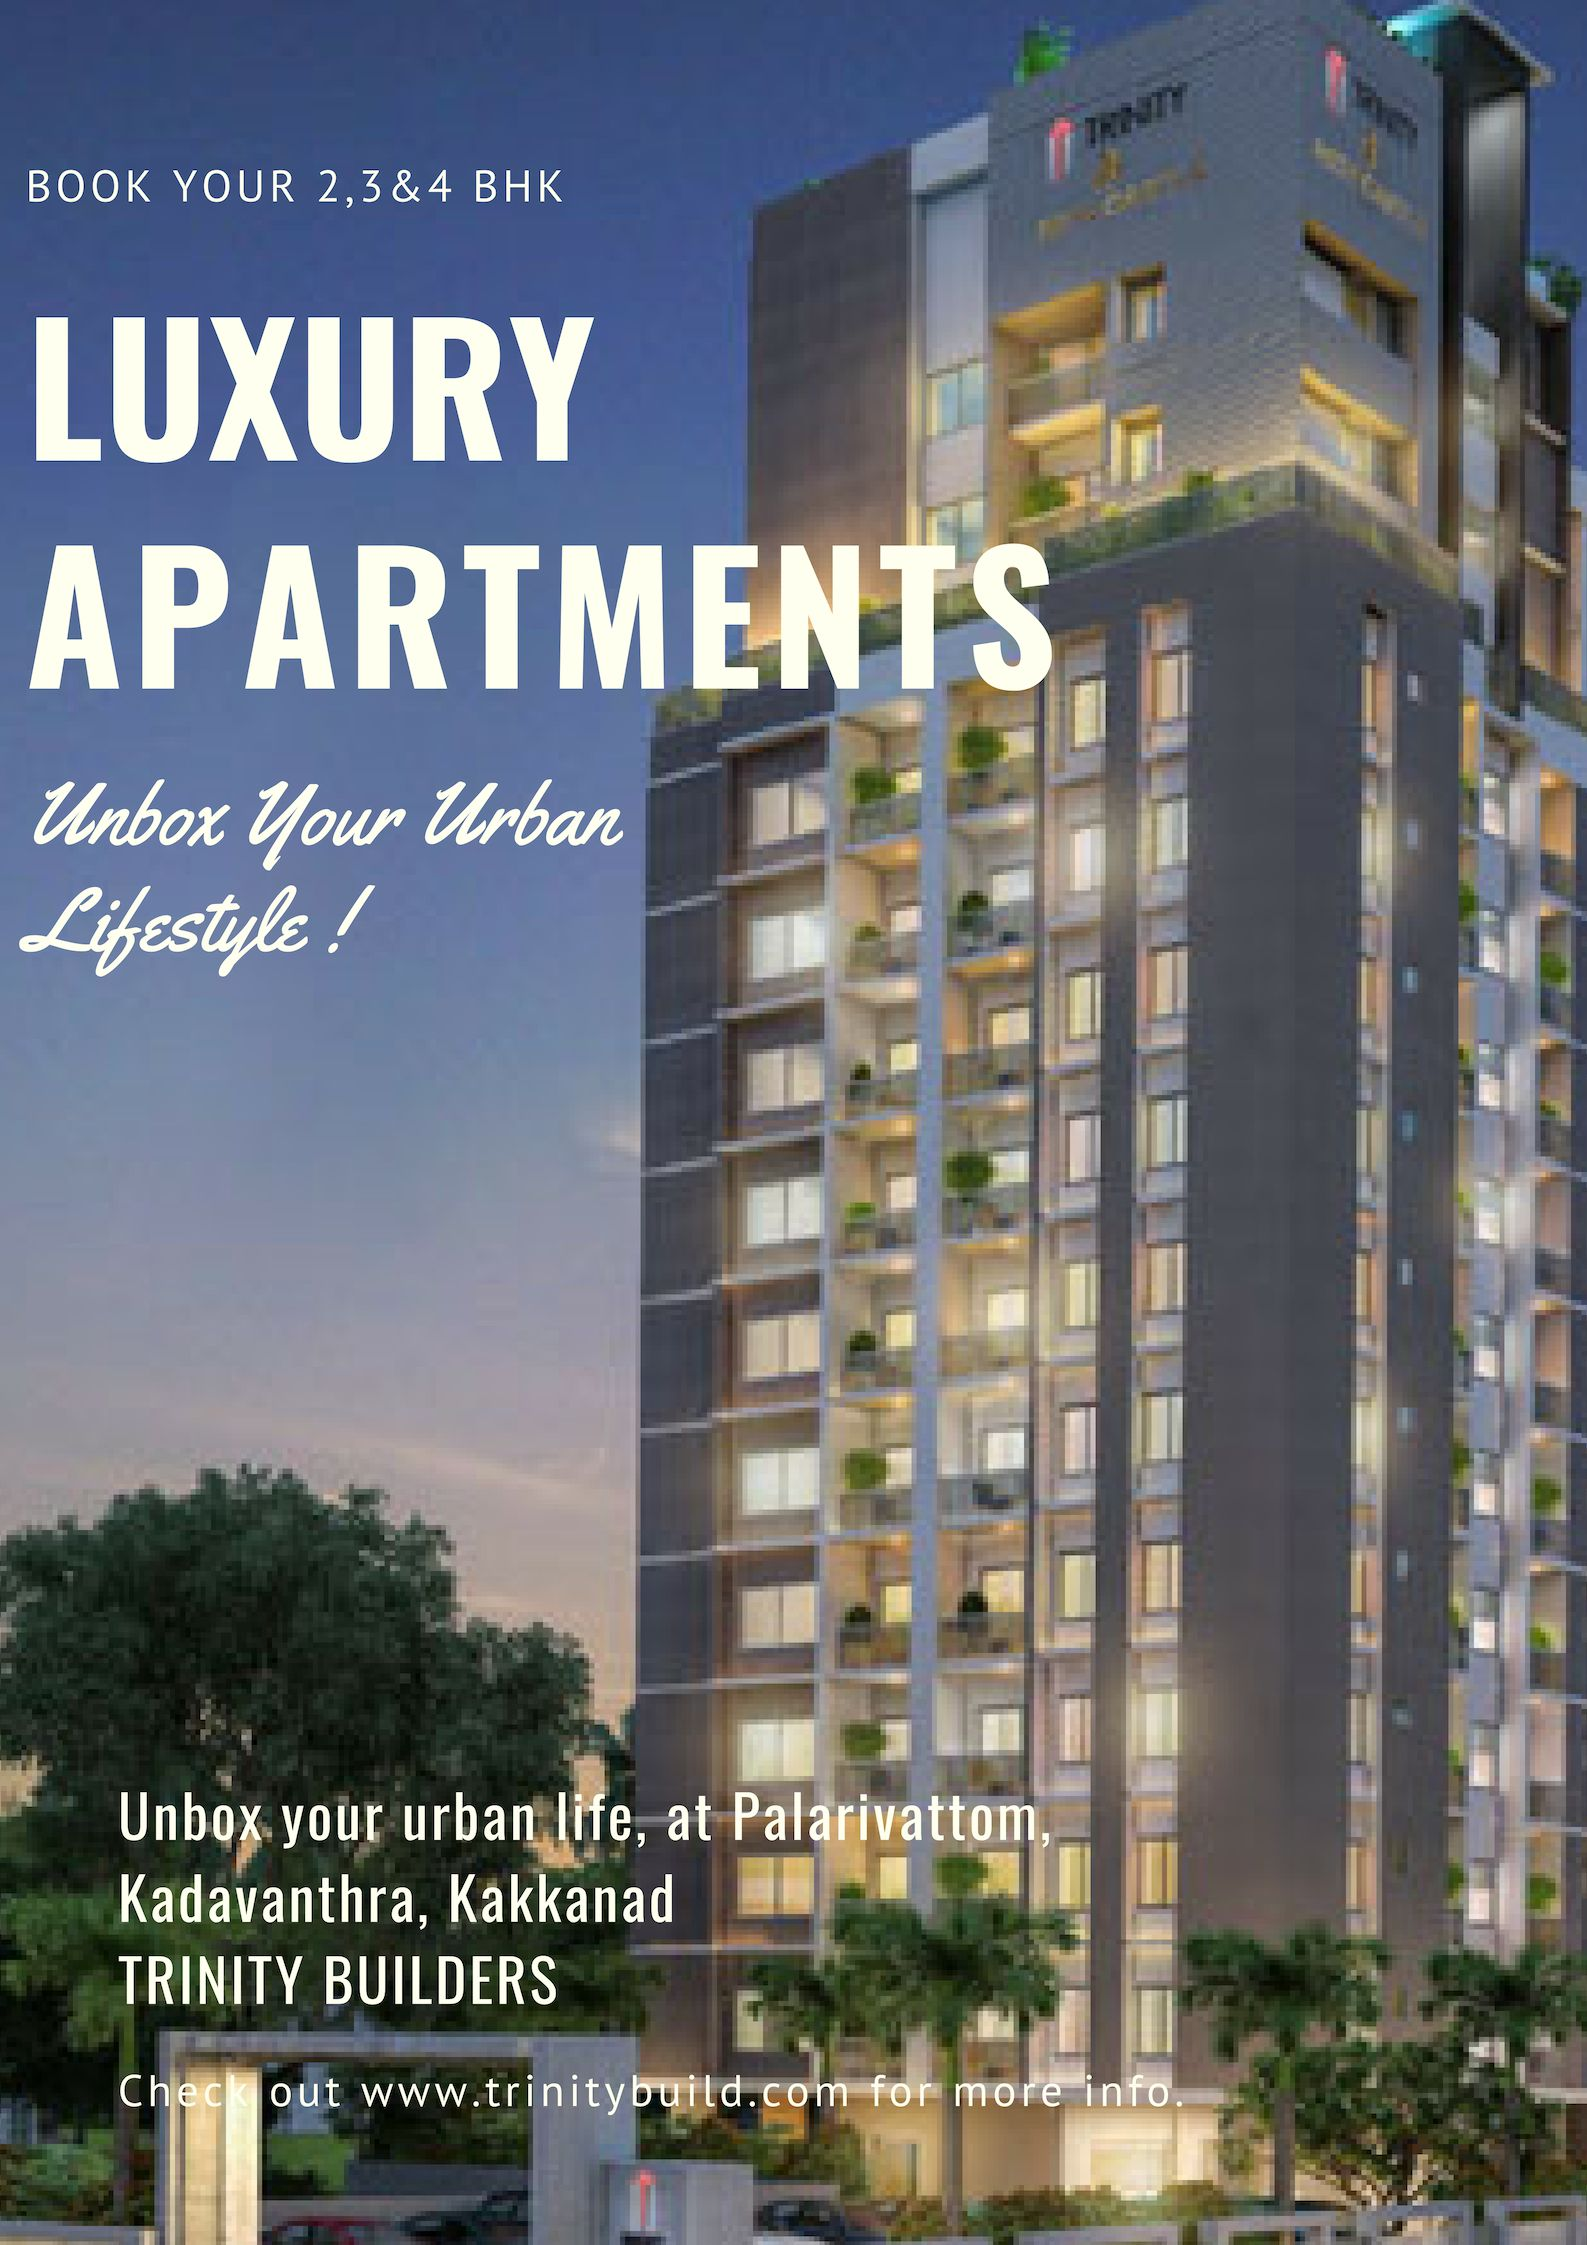 2 3 4 Bhk Luxury Flats In Kochi At Reasonable Rates Unbox Your Urban Life Ernakulam The Apartments Offering Unmatched Connectivity And